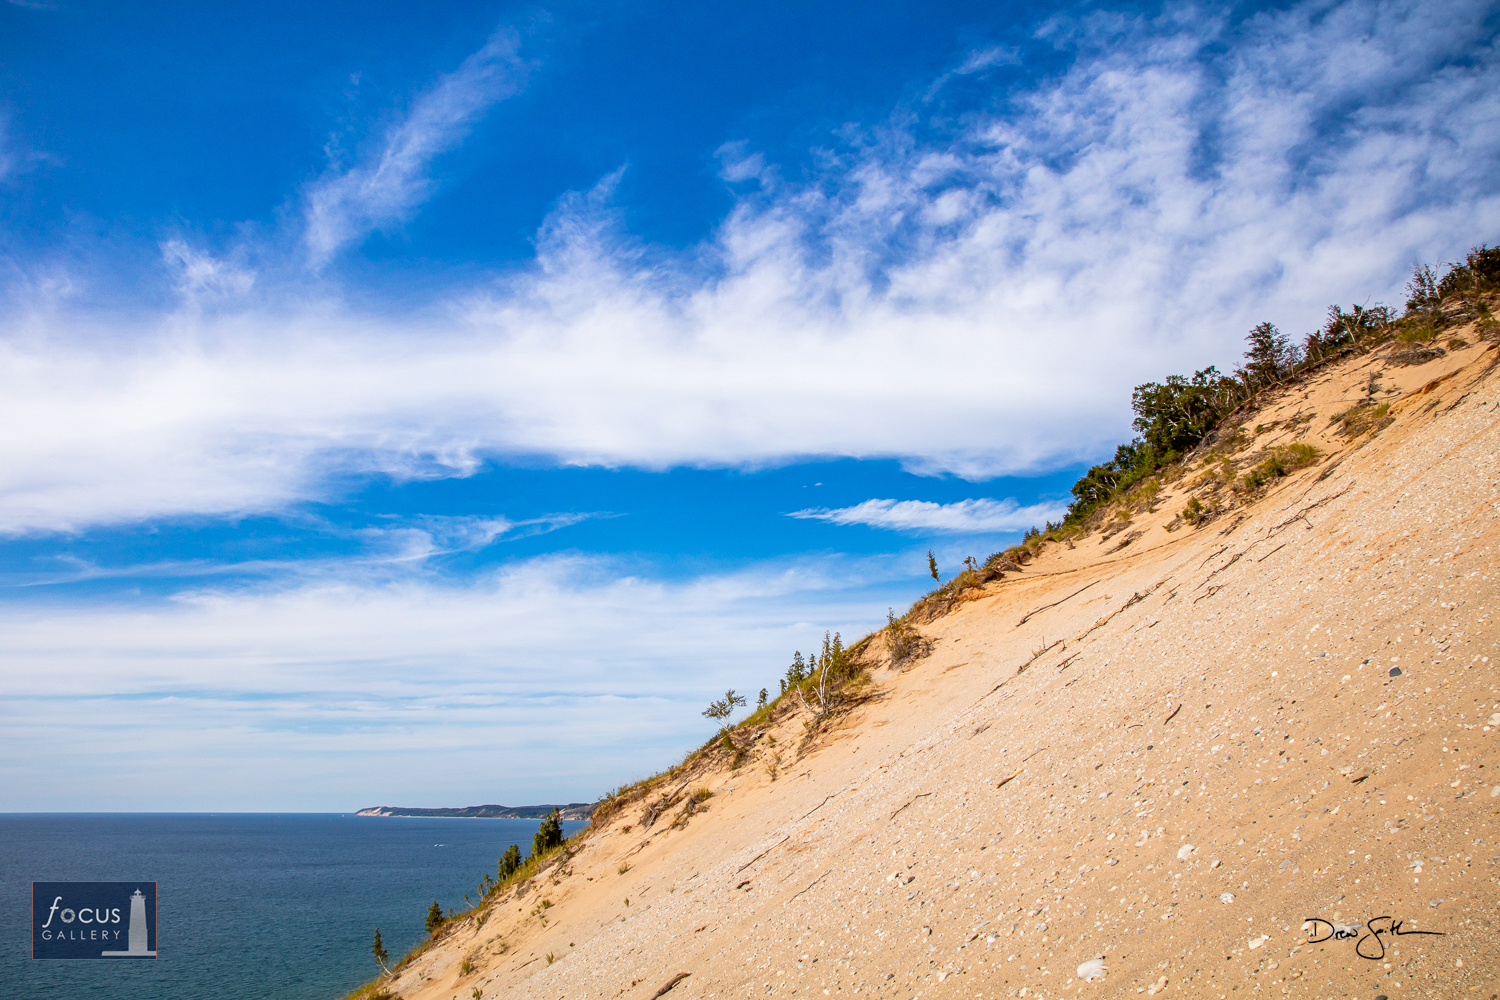 Photo © Drew Smith You really get a sense of the size and scale of the dunes along Lake Michigan when you are out on Old Baldy...